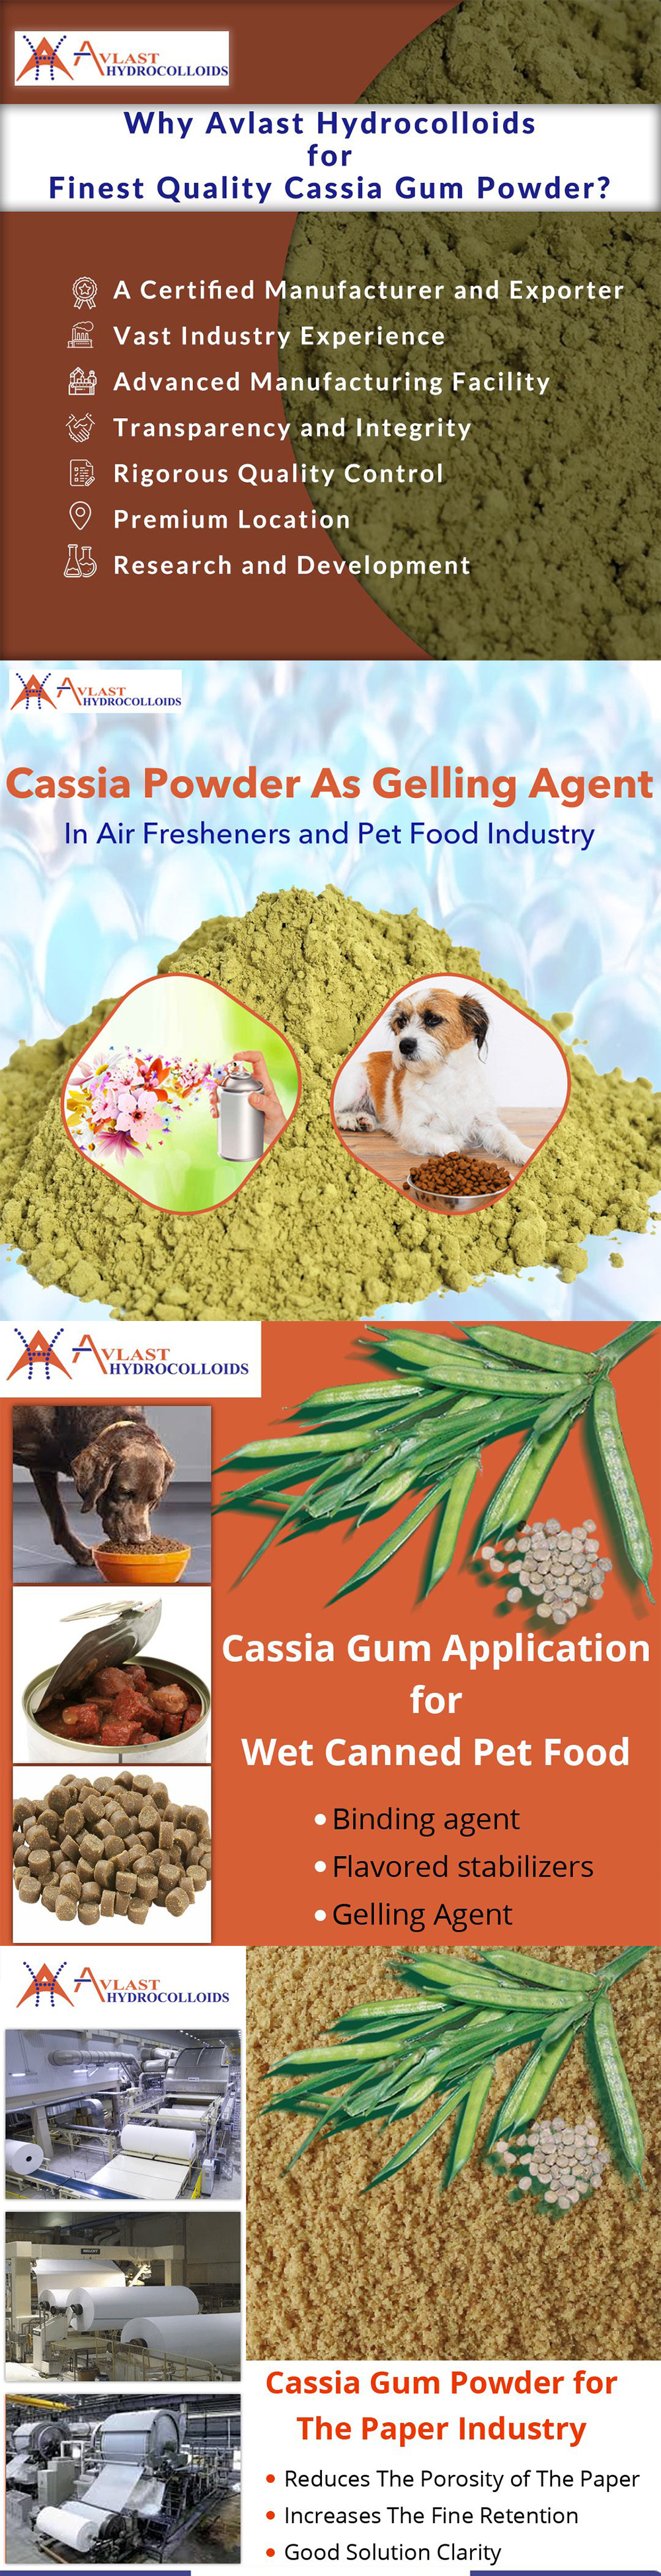 How Cassia Glactomannans (Cassia Gum Powder) Effect In Chunks In Jelly Recipes With Carrageenan And Xanthan Gum